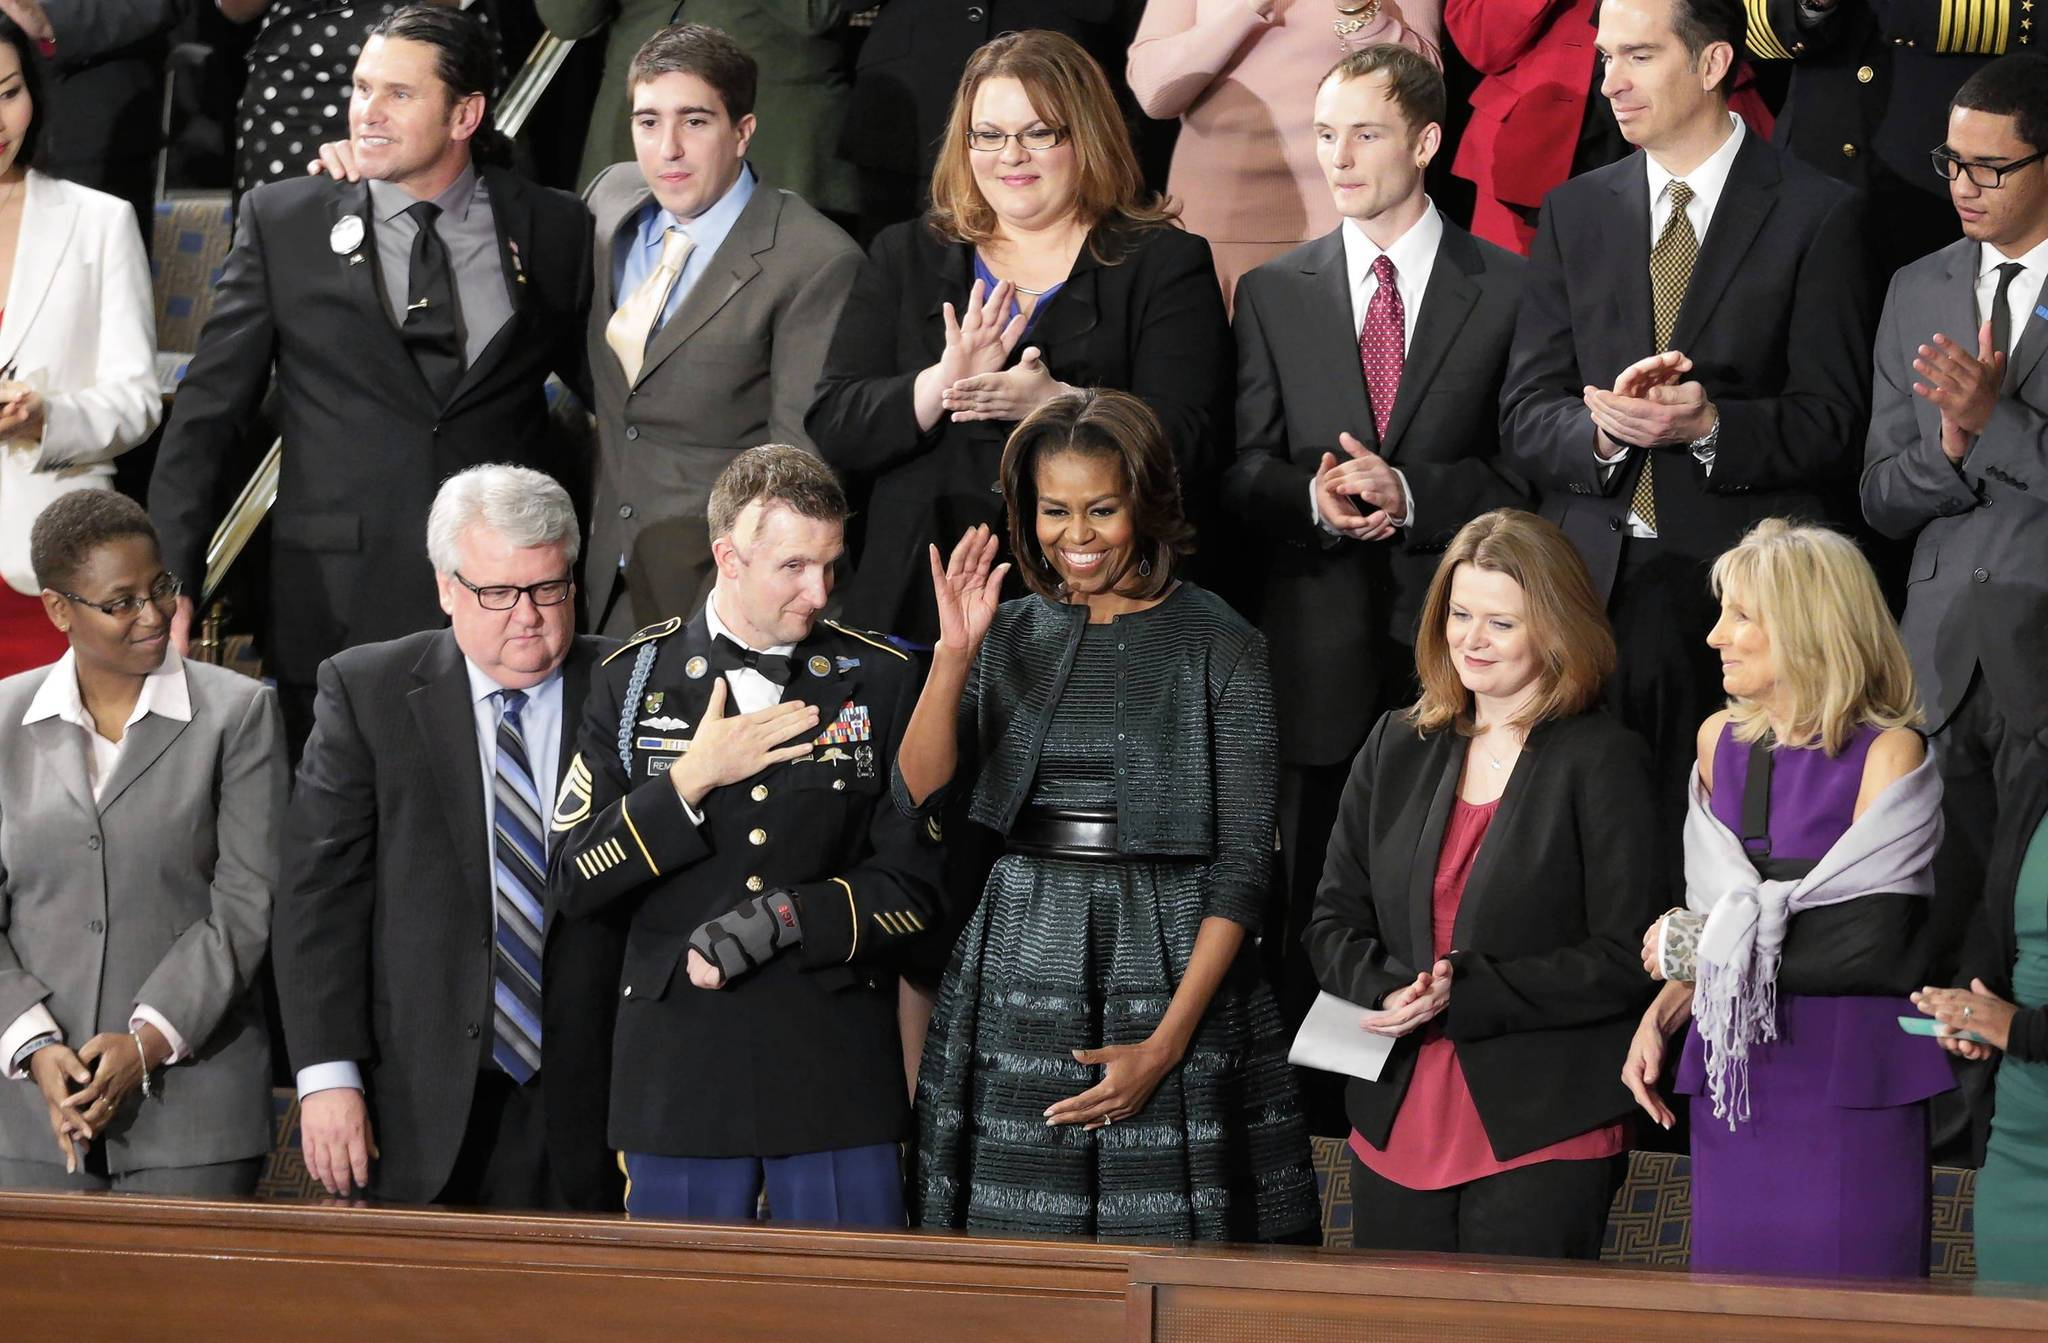 First lady Michelle Obama waves before President Barack Obama's State of the Union speech on Tuesday night.